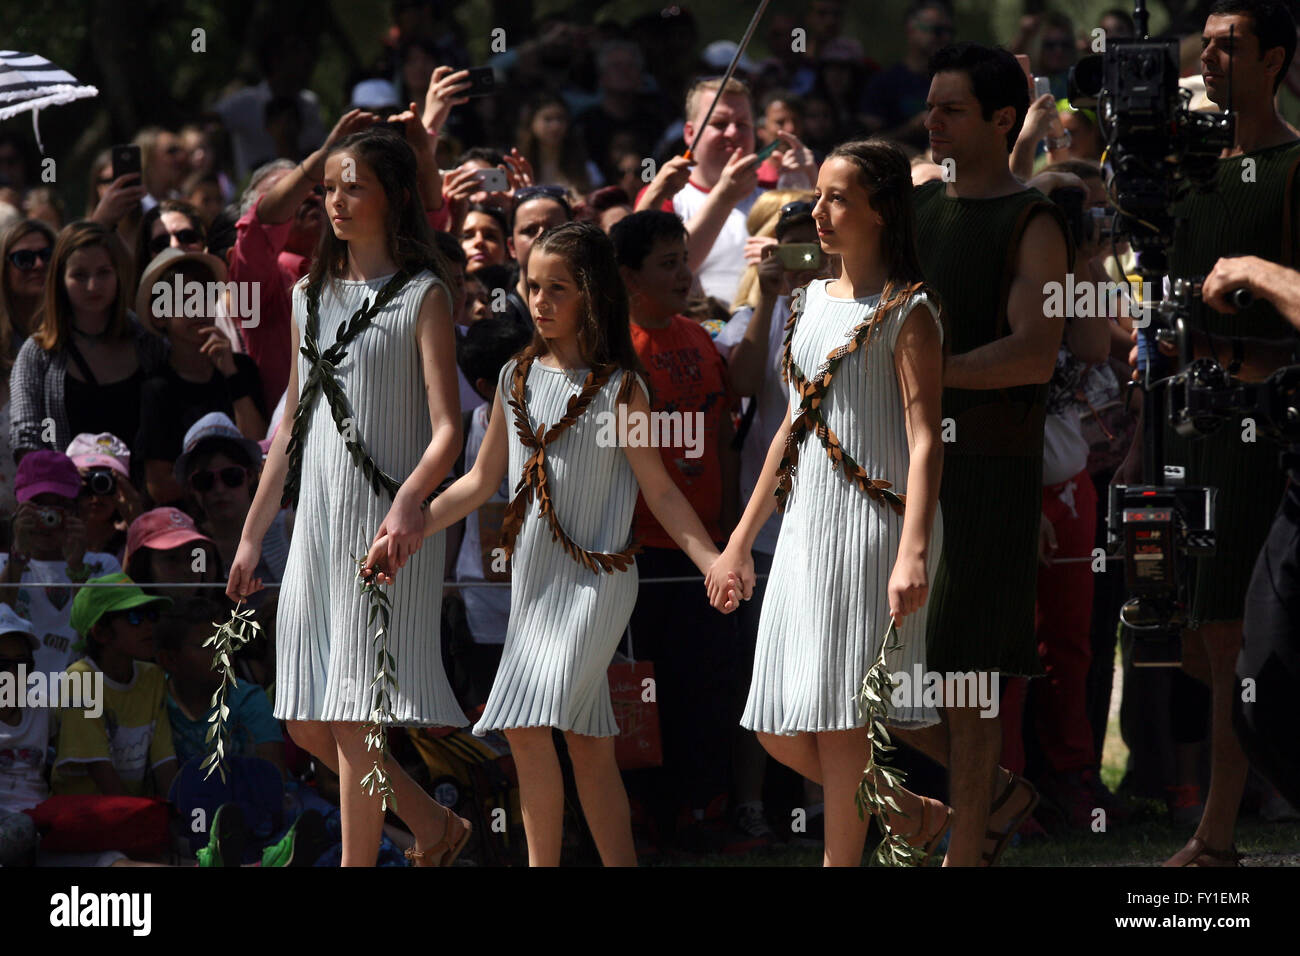 (160420) -- OLYMPIA Greece Apr 20 2016 (Xinhua) -- The dress rehearsal for the Olympic flame lighting ceremony for the Rio 2016 Olympic Games is held at ...  sc 1 st  Alamy & 160420) -- OLYMPIA Greece Apr 20 2016 (Xinhua) -- The dress ... azcodes.com